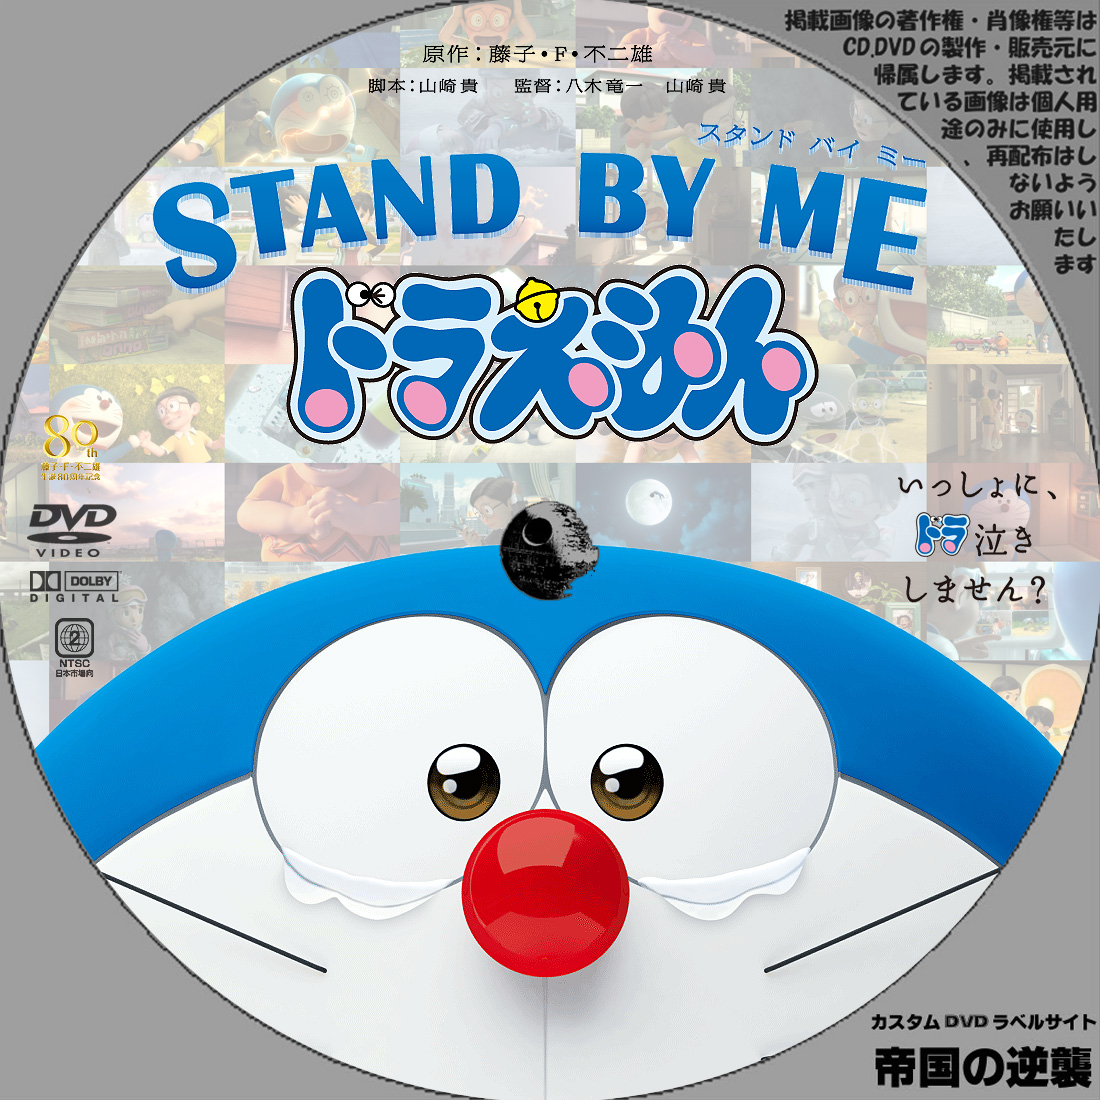 STAND BY ME ドラえもんの画像 p1_13